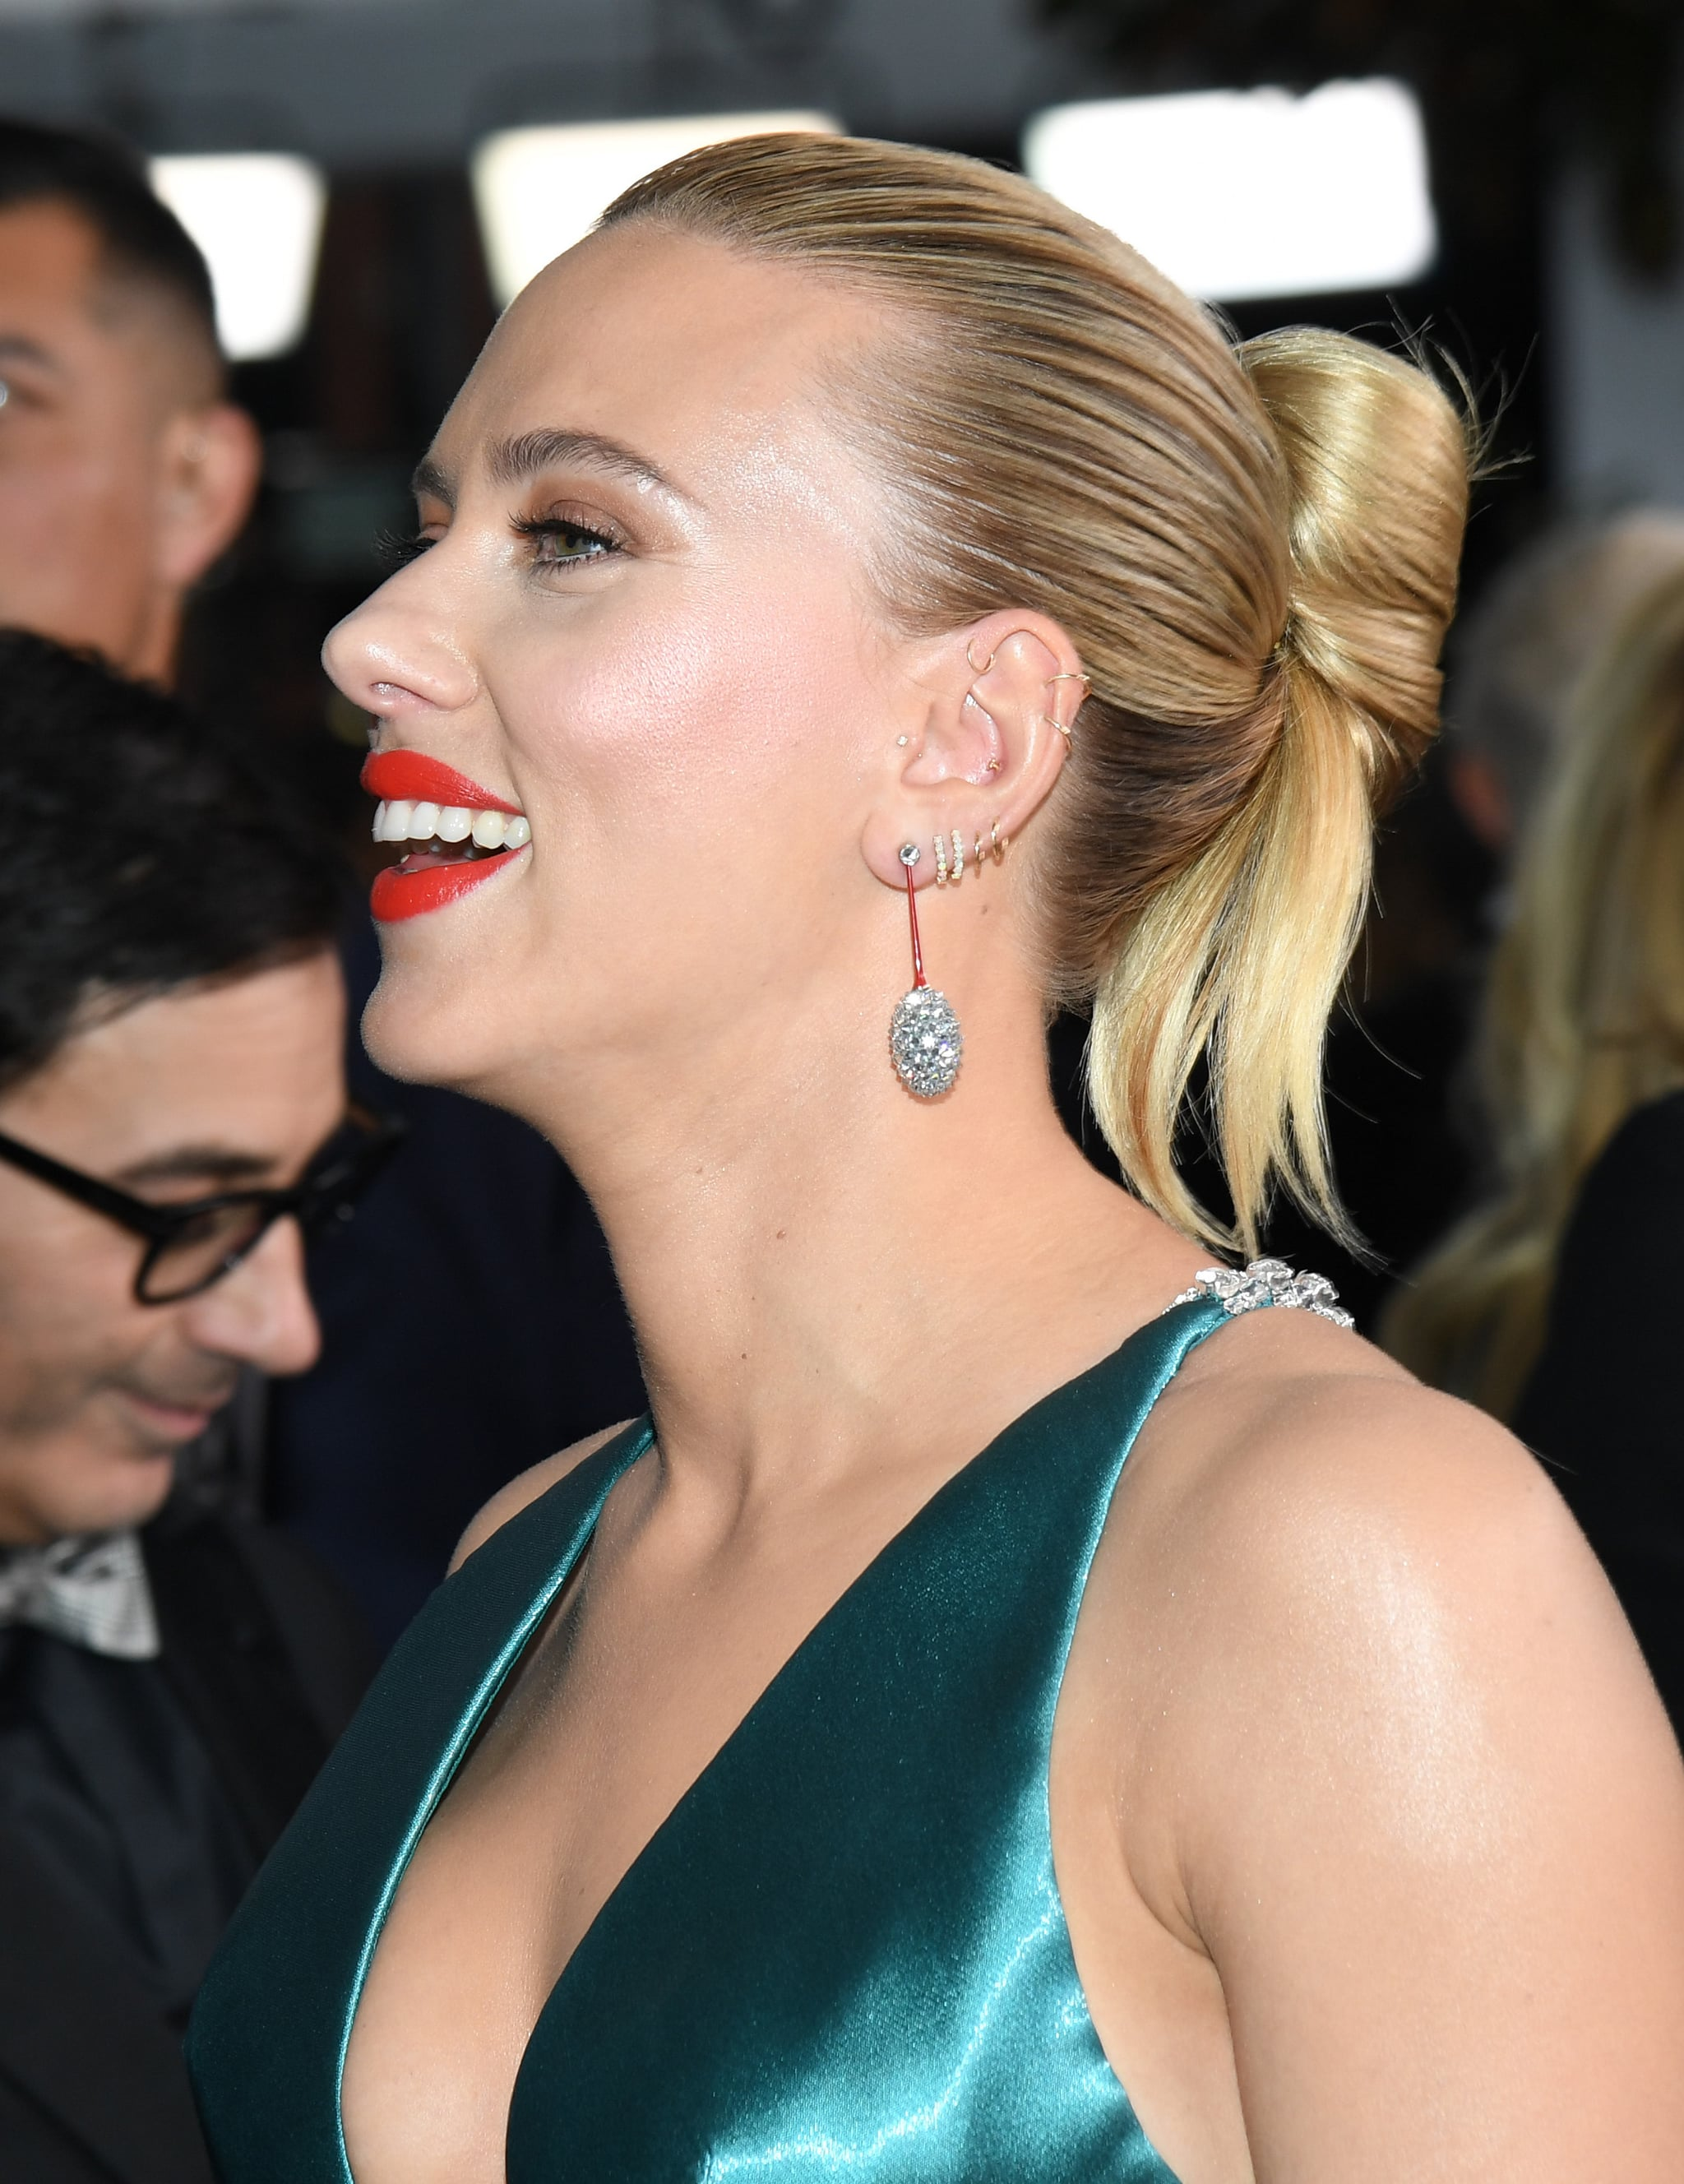 Scarlett Johansson Celebrities With Multiple Ear Piercings Popsugar Beauty Australia Photo 4